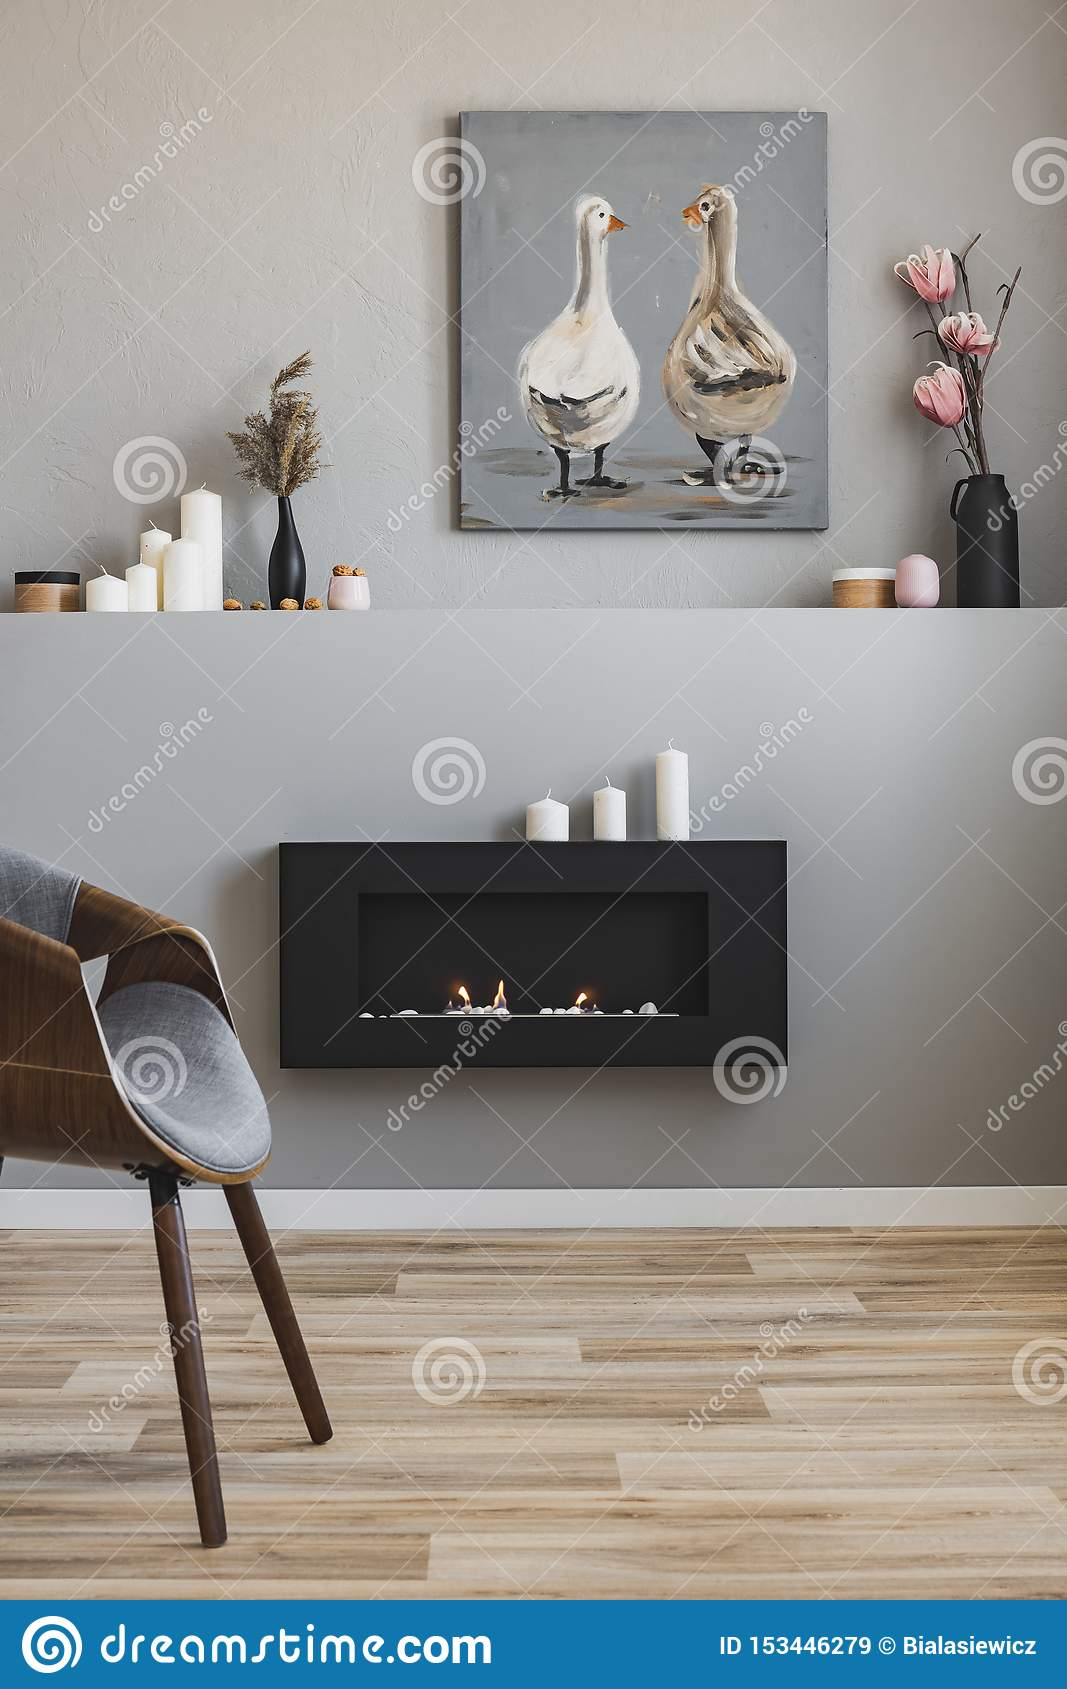 Flowers In Vases Candles And Rustic Painting On Shelf Above Eco Fireplace In Fashionable Living Room Interior Stock Image Image Of Fireplace Elegant 153446279